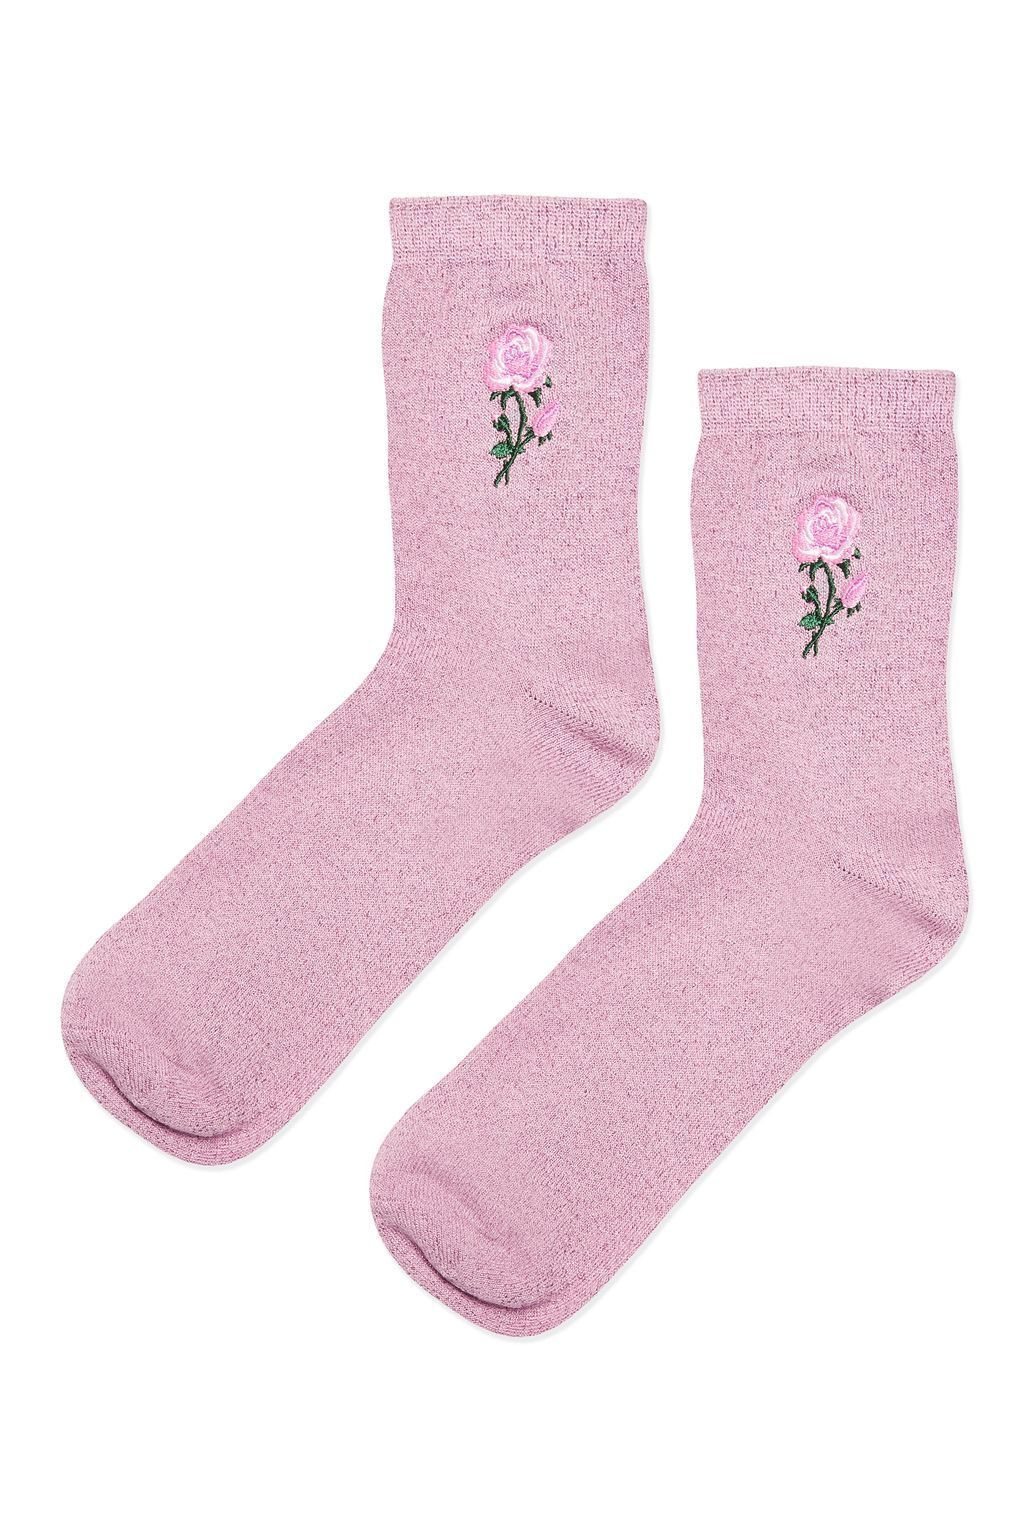 Embroidered Glitter Rose Ankle Socks Topshop Socks Fashion